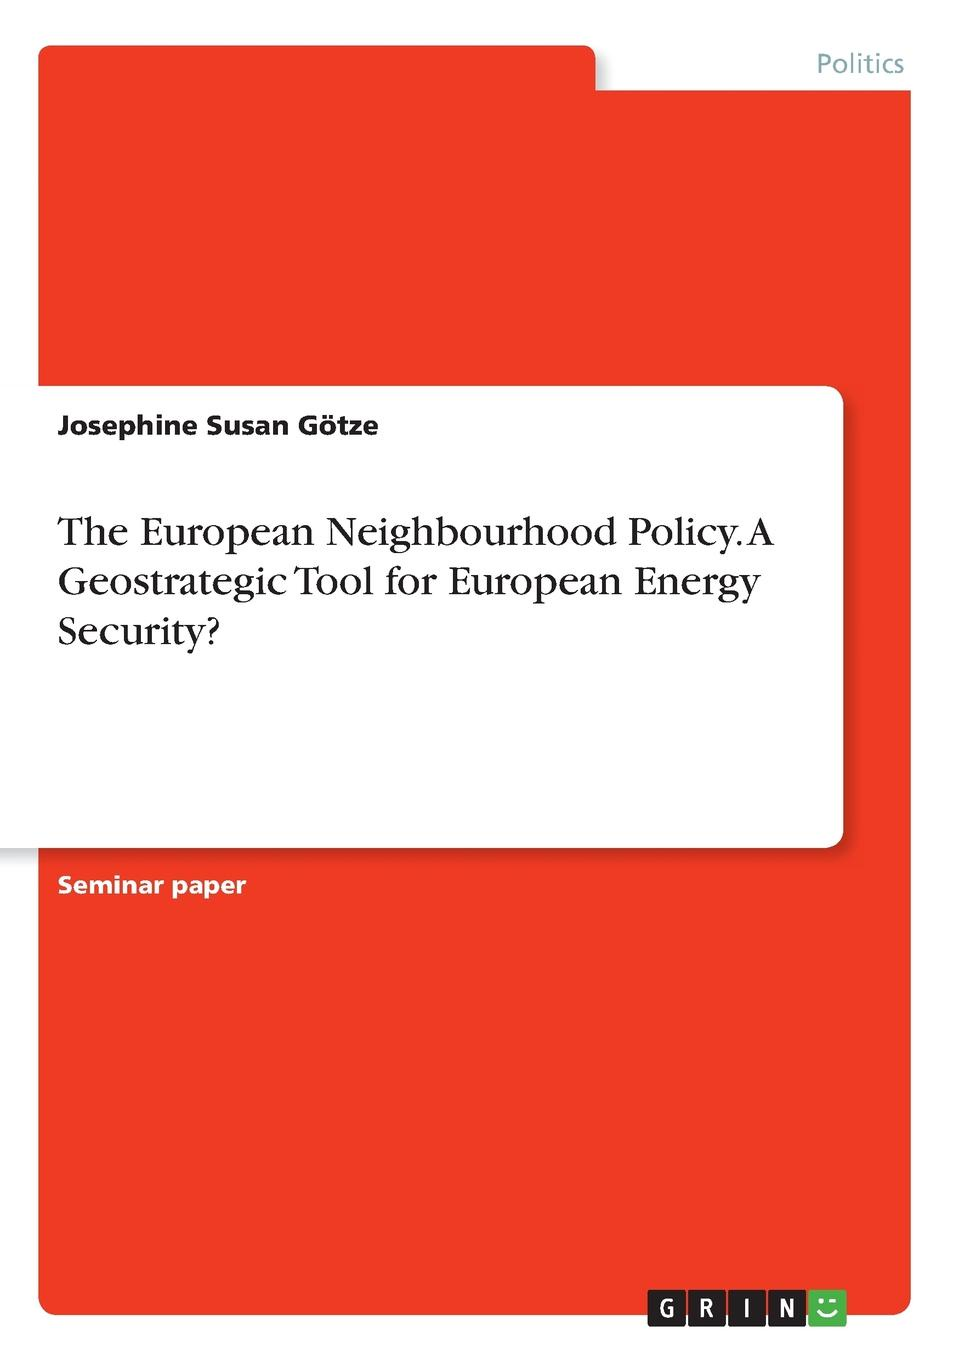 Josephine Susan Götze The European Neighbourhood Policy. A Geostrategic Tool for European Energy Security. sonja kirschner assessment of the language education policy in austria and its fitness for purpose within the european union